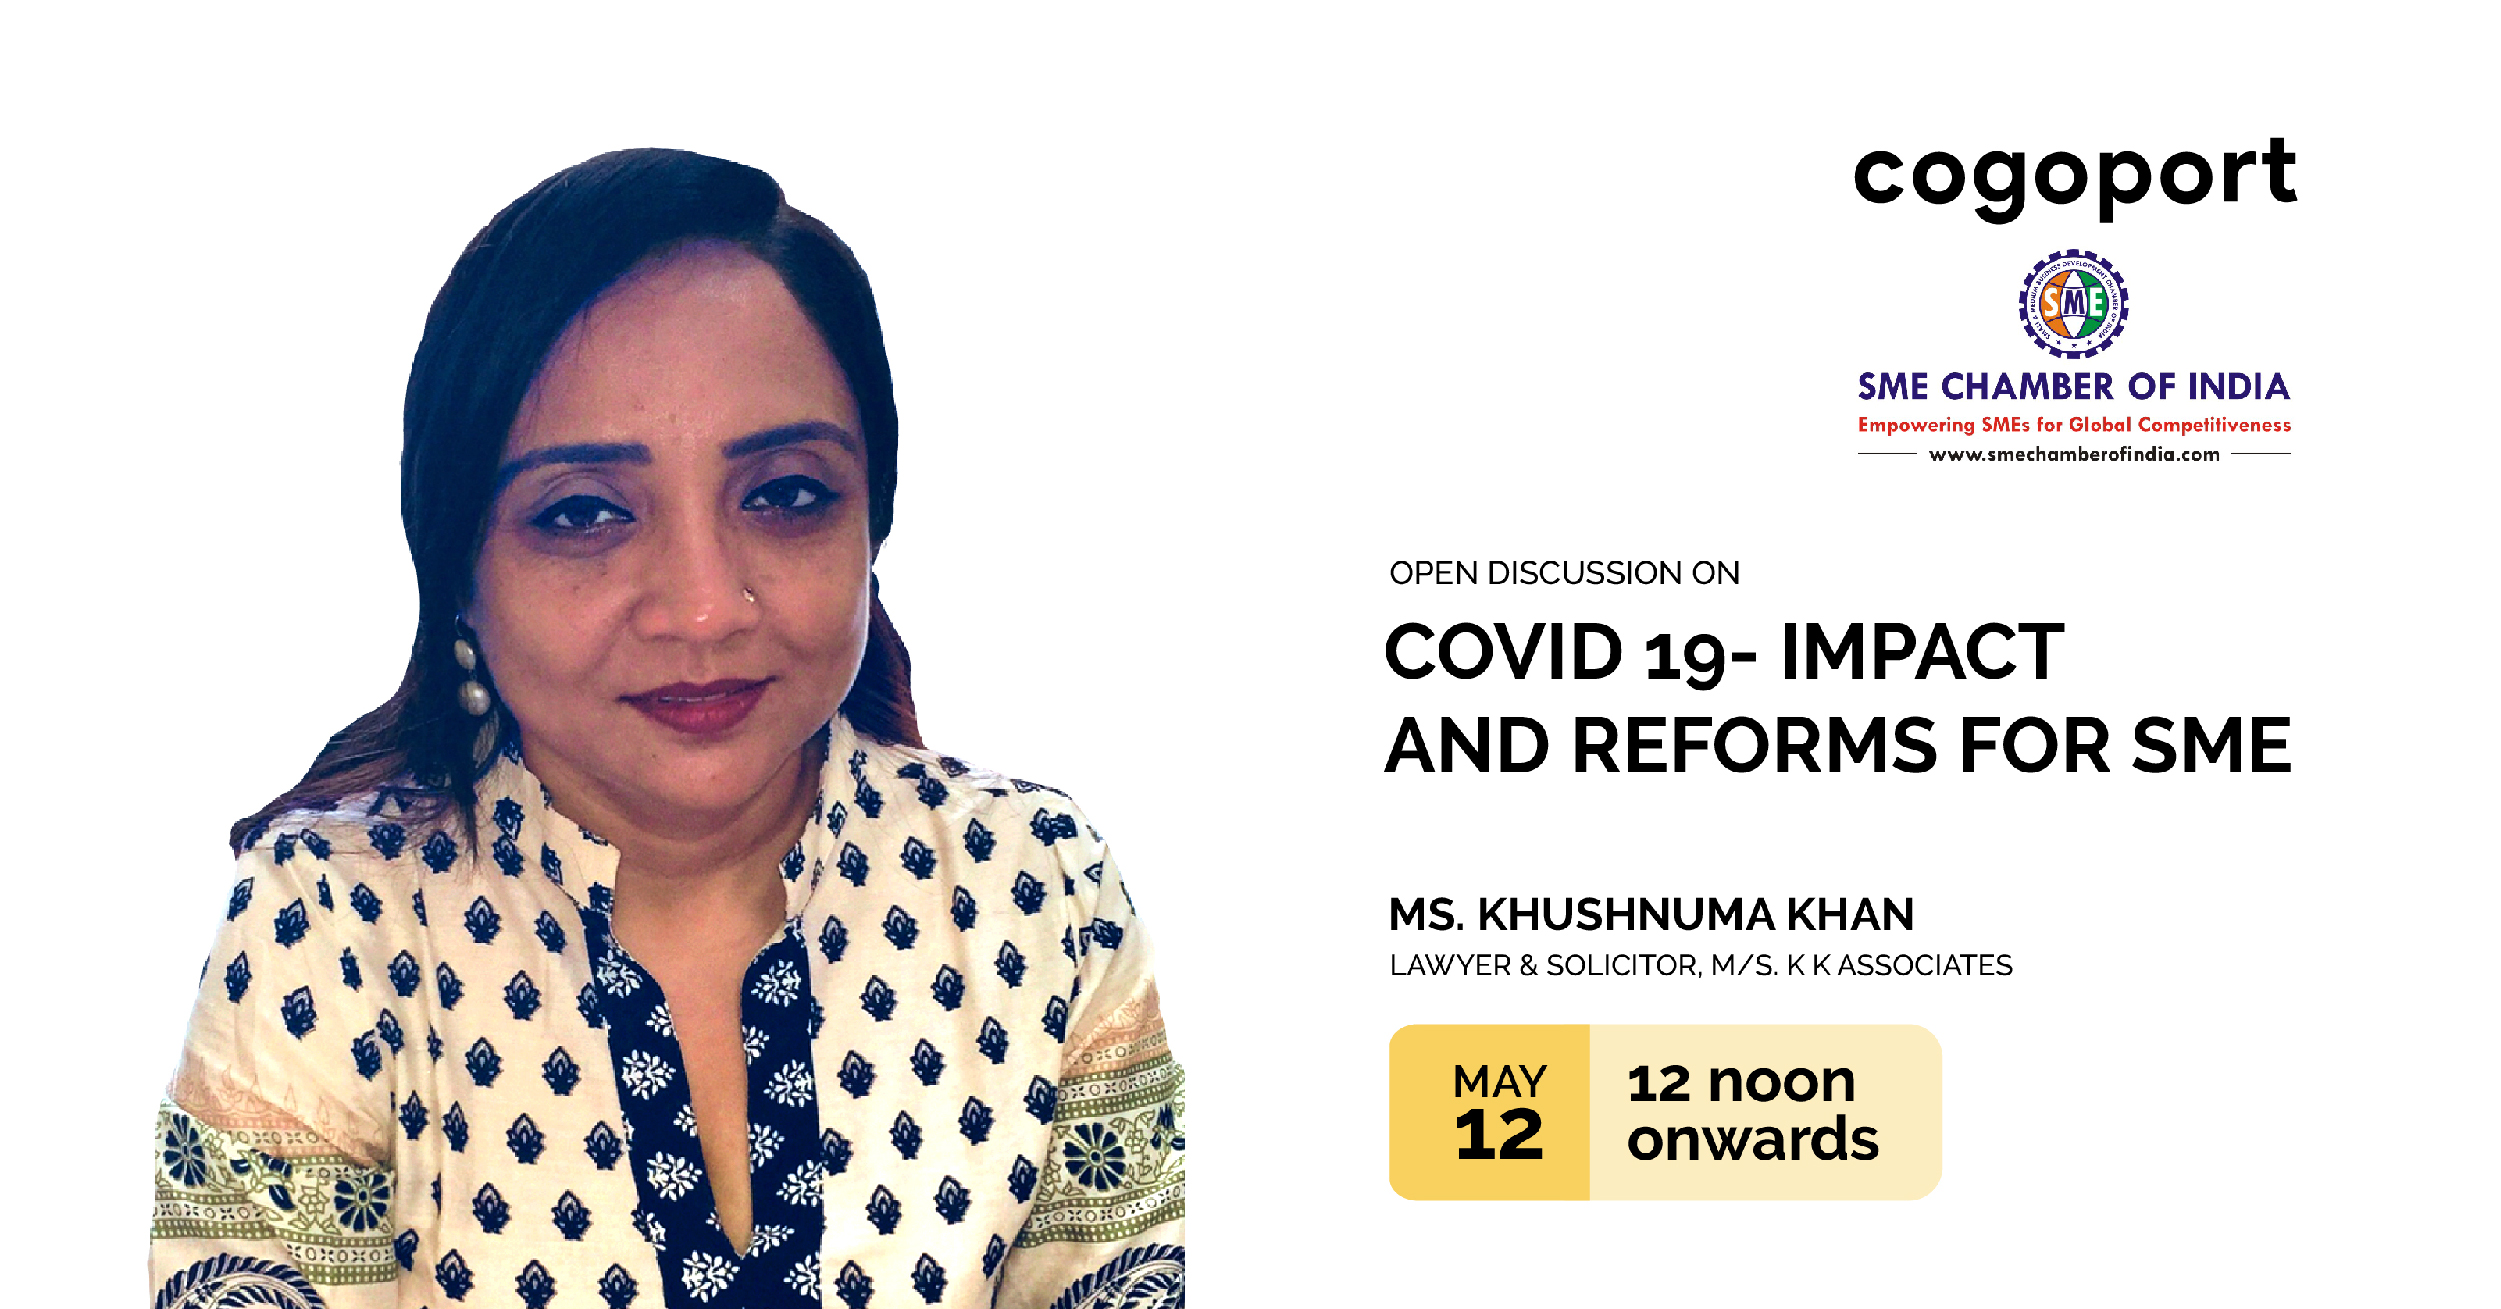 Covid-19 Impact and Reforms for SME